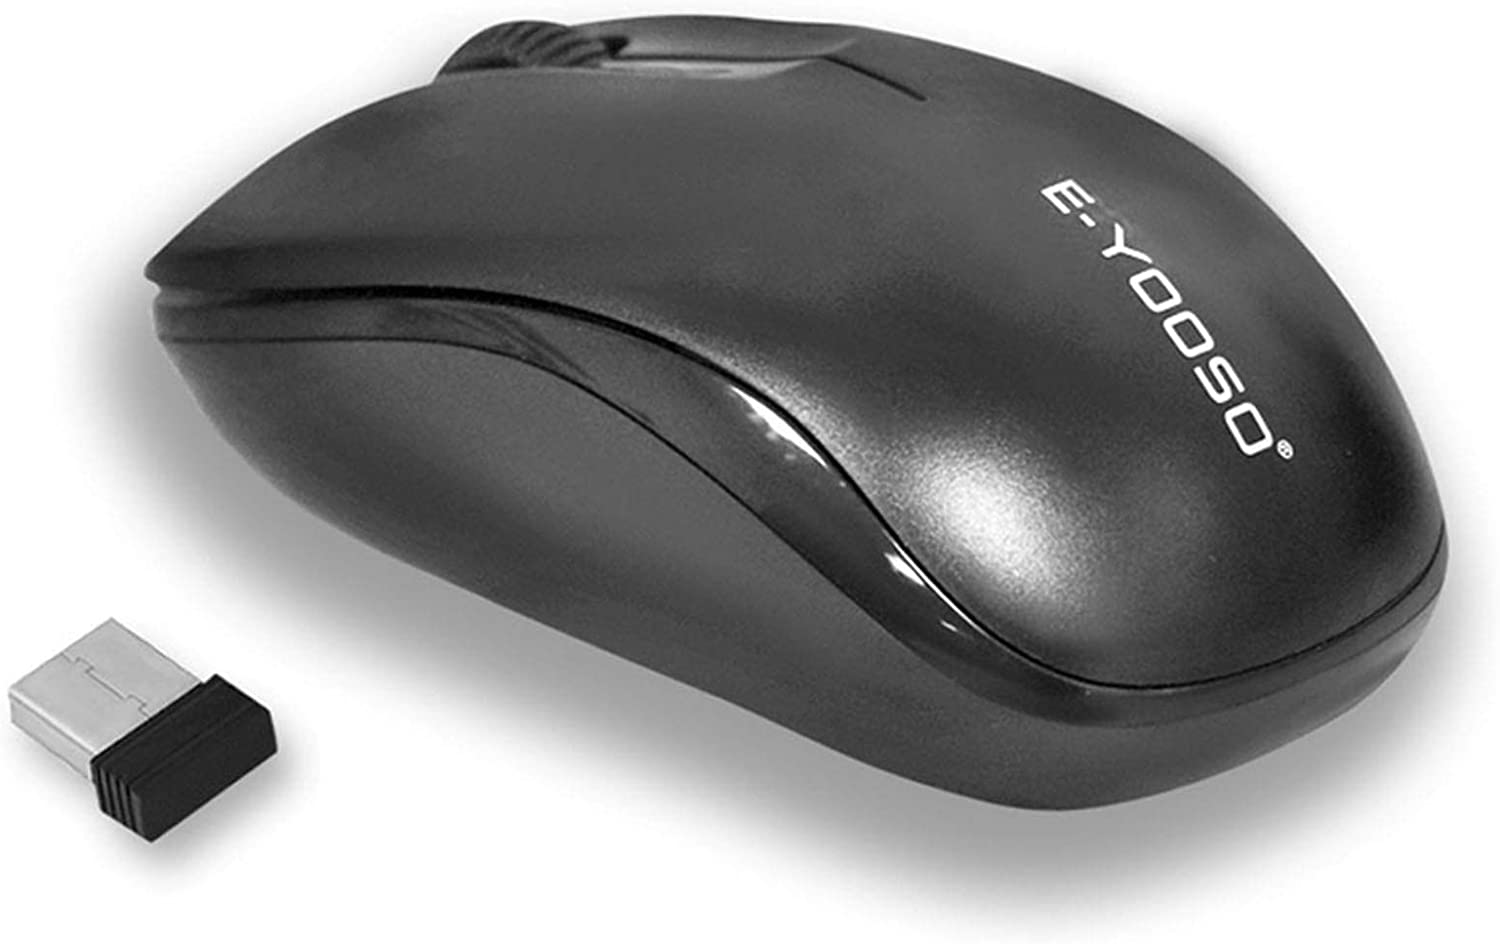 Wireless Mouse,E-YOOSO 2.4GHz Basic Fast-Scrolling&Ergonomic Minimalist Computer Mouse,800/1200/1600 Adjustable CPI,Solid Wireless Mice with Long Battery Life for Laptop/PC/Computer/Chromebook,Black